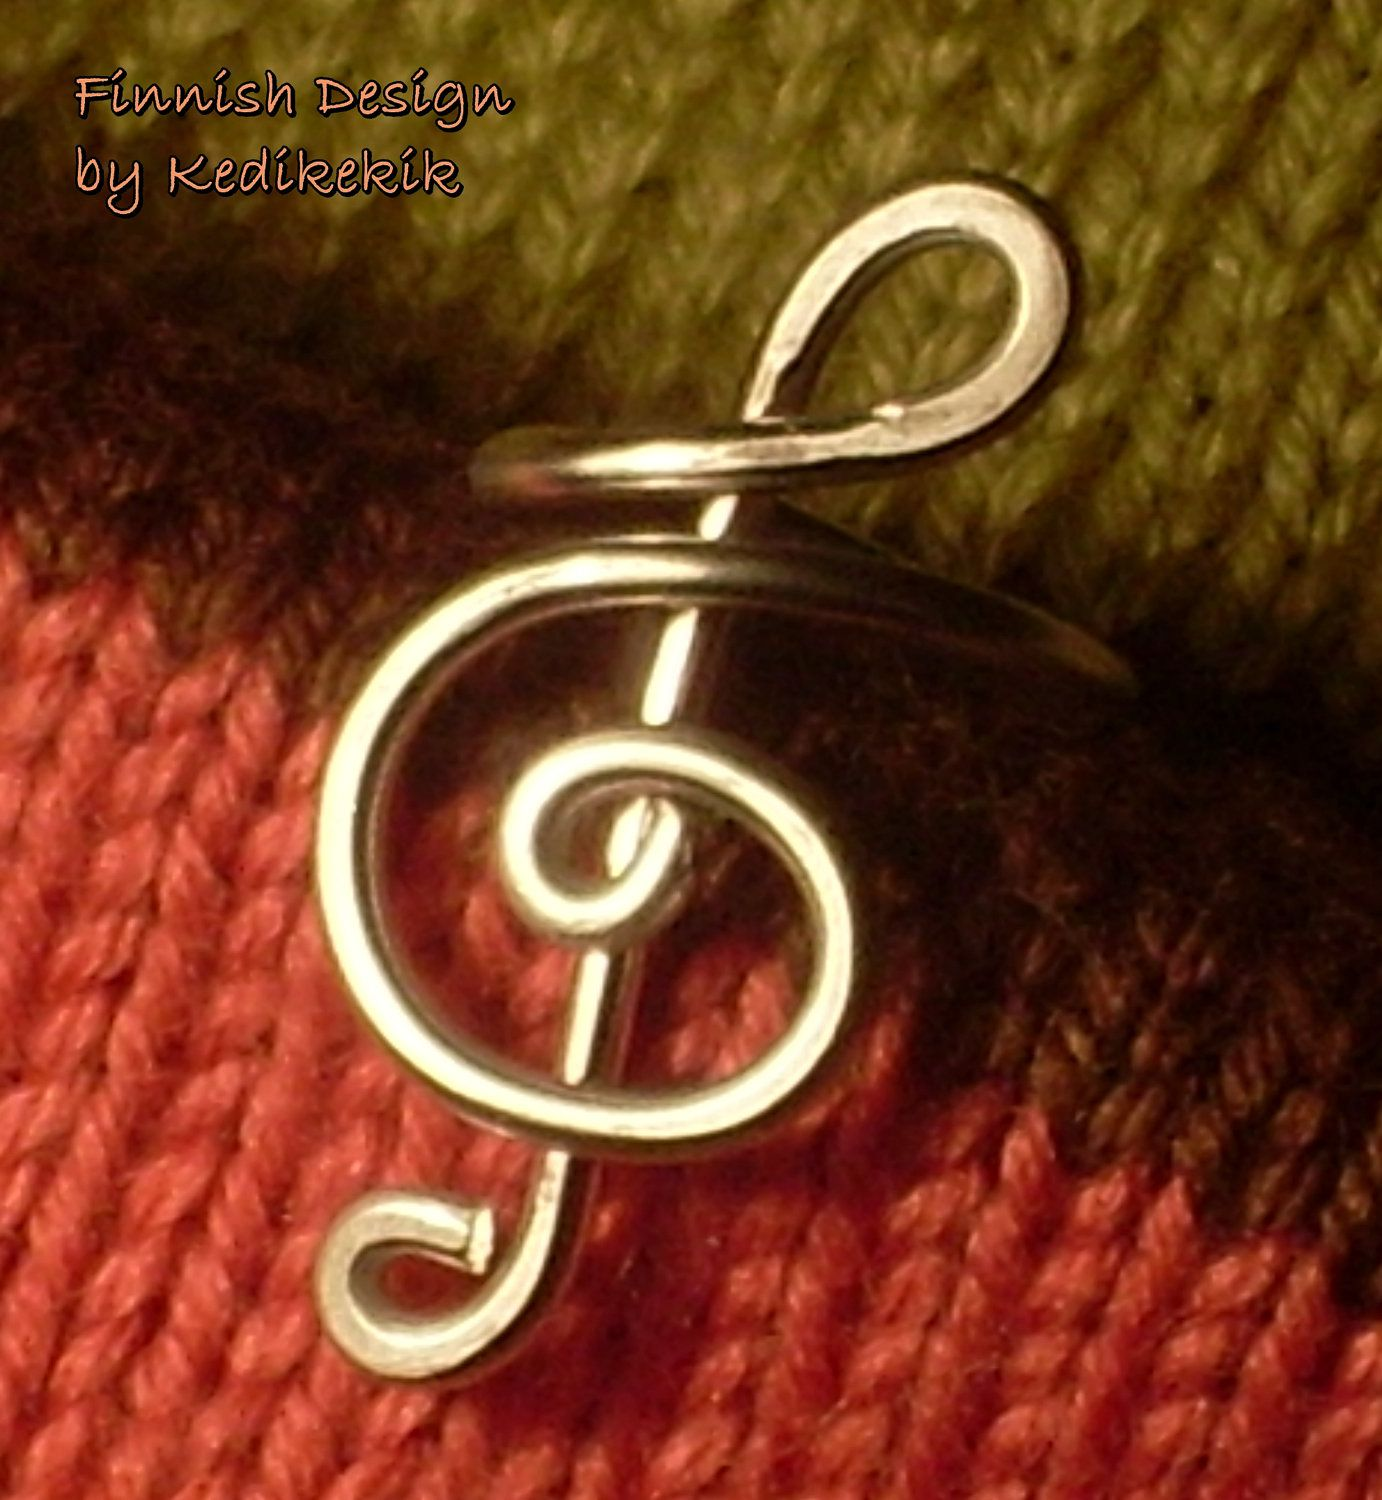 Wrapped Wire TREBLE CLEF RING for You Who Like Music - Custom Made - For Musicians and Music Lovers - Delivered in Cute Lilac Ring Box. $13.99, via Etsy.